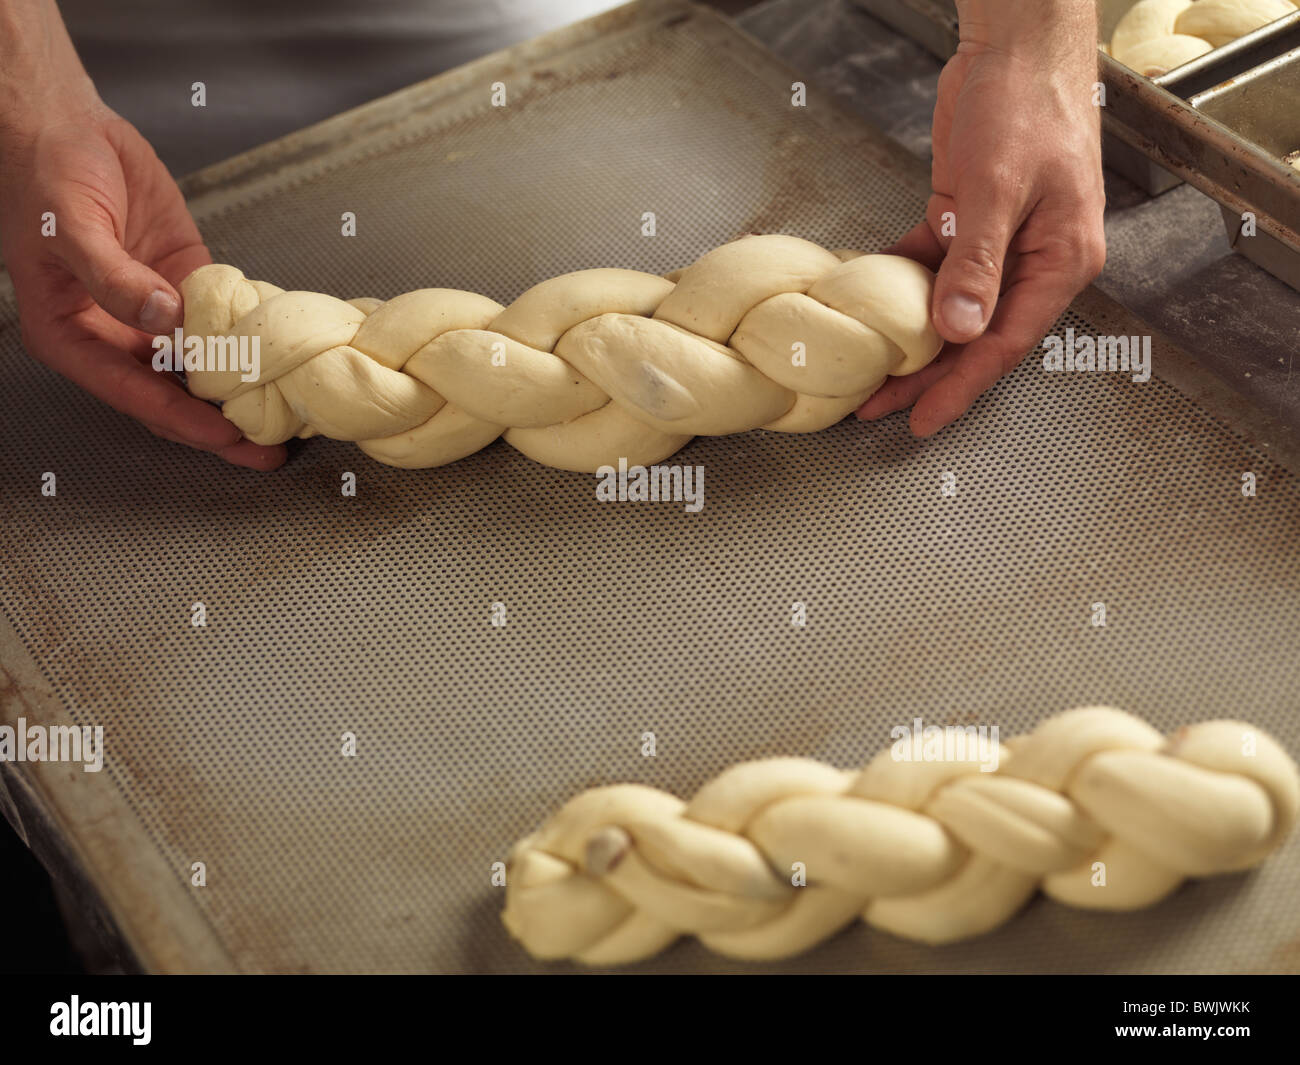 Closeup of bakers hands laying braided bread challah on a baking tray - Stock Image